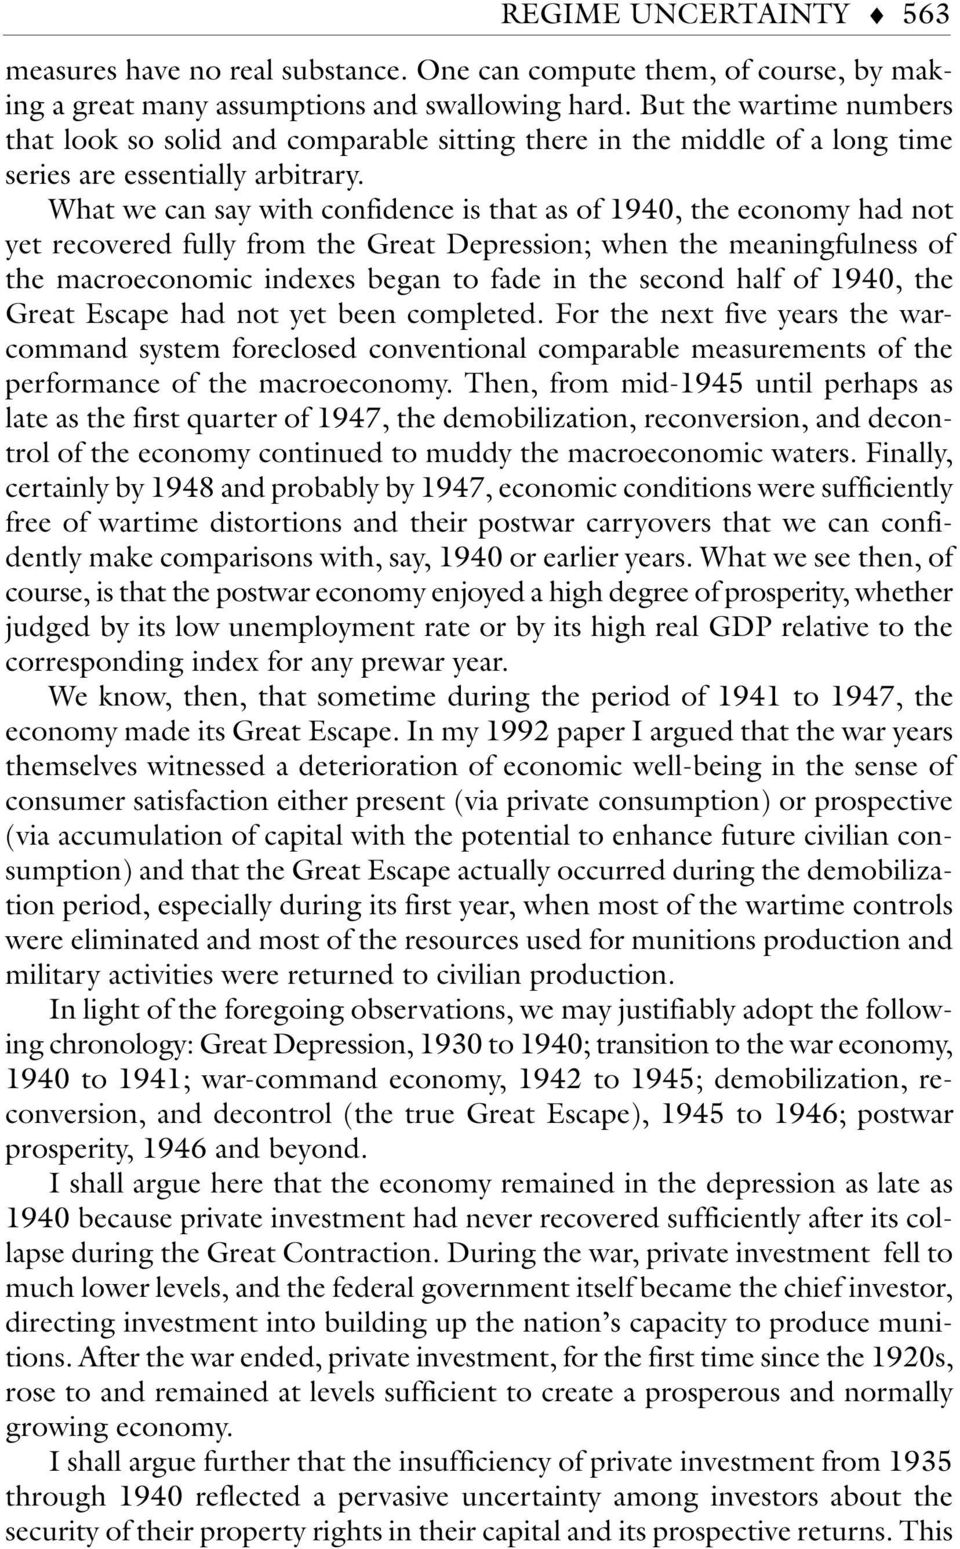 What we can say with confidence is that as of 1940, the economy had not yet recovered fully from the Great Depression; when the meaningfulness of the macroeconomic indexes began to fade in the second